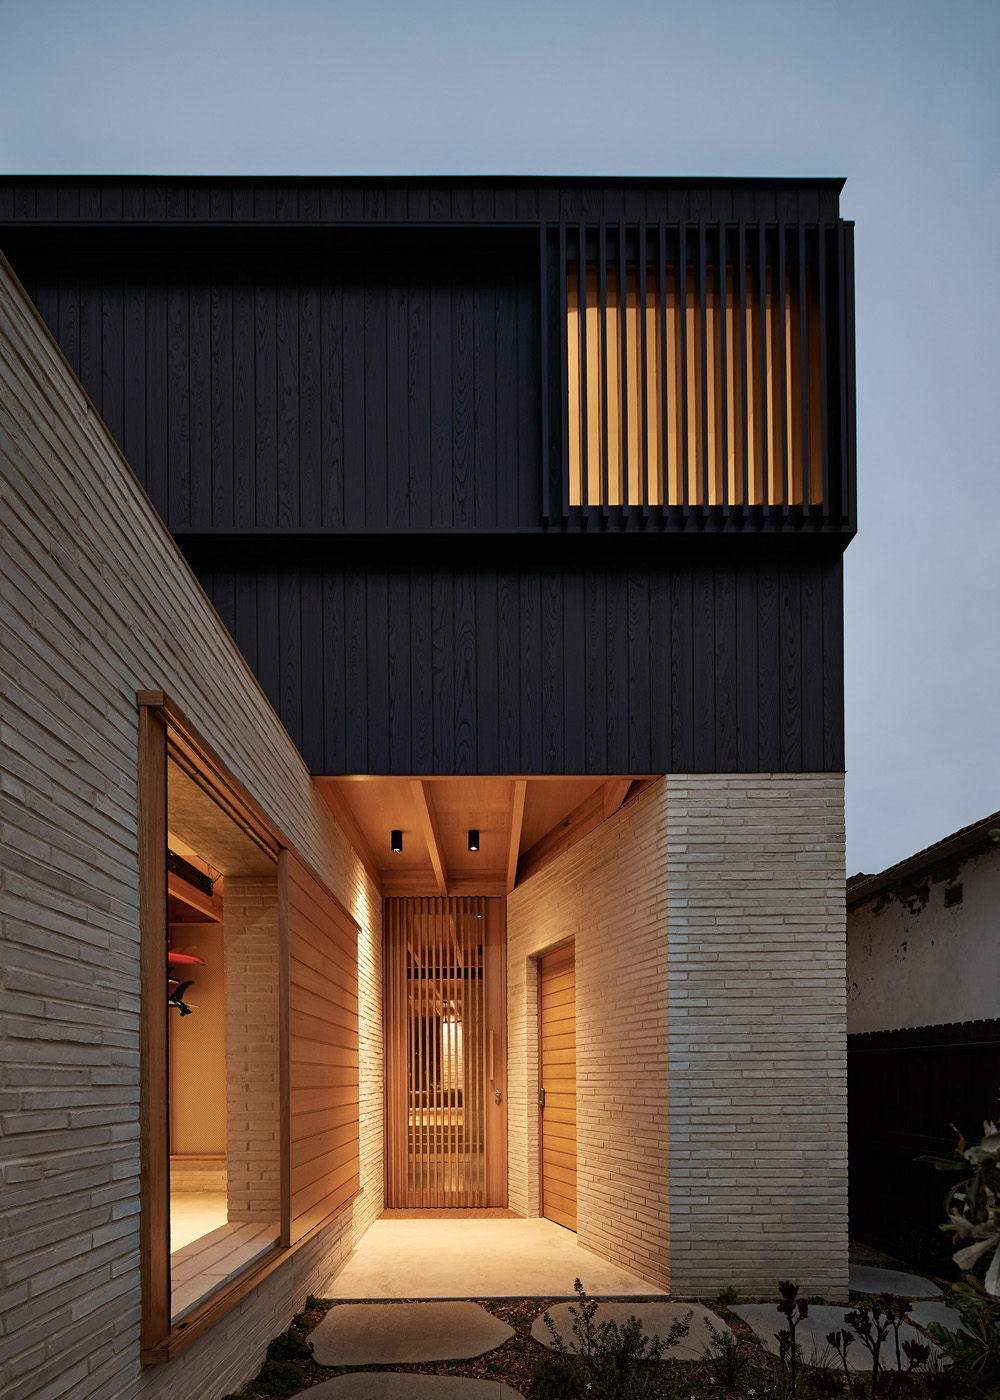 Id Arquitectos Brick House Andrew Burges Architects Wiring In Wall Led Lighting Used Throughout For Provision Of Future Solar Panels On Roof Rainwater Capture And Re Use Toilets Water Irrigation